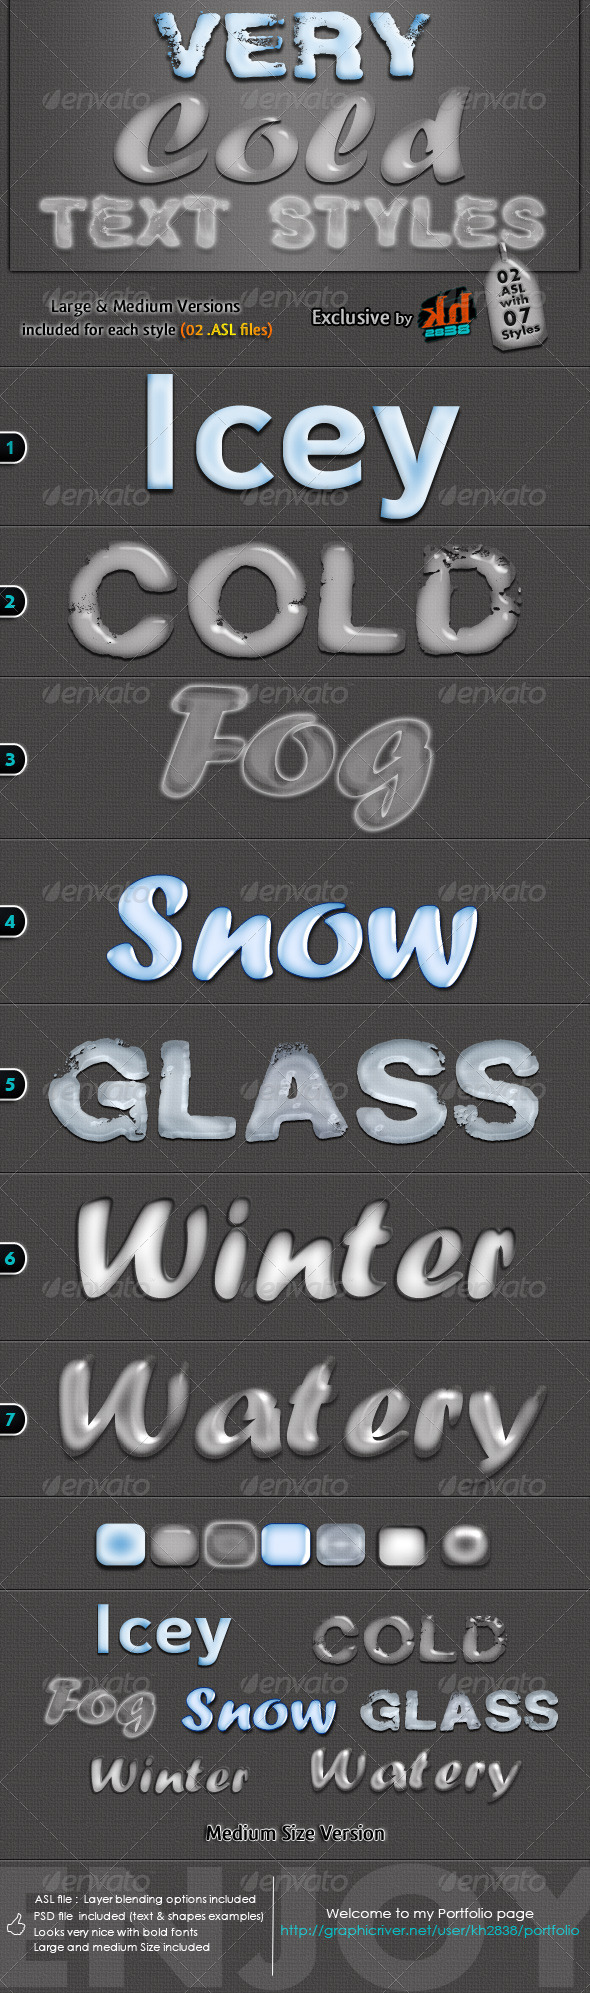 Very Cold Text Styles - Text Effects Styles